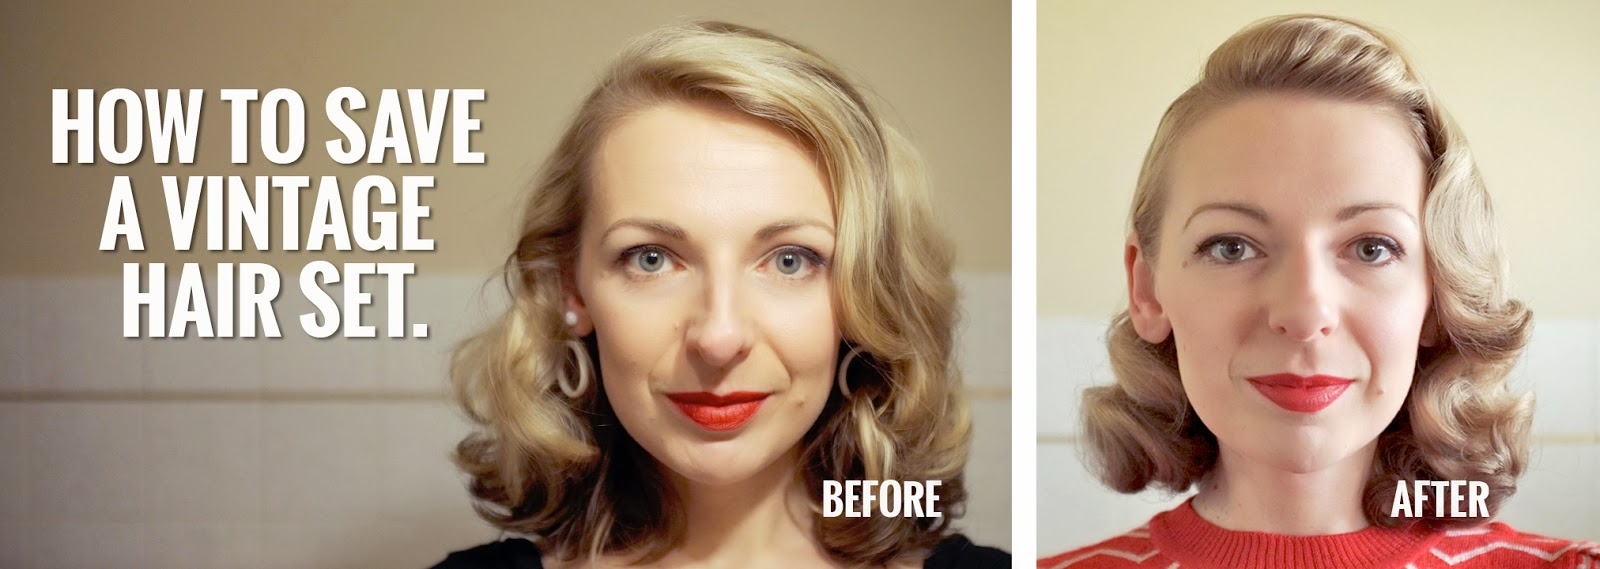 Forbidden Charm How To Save A Vintage Hair Set